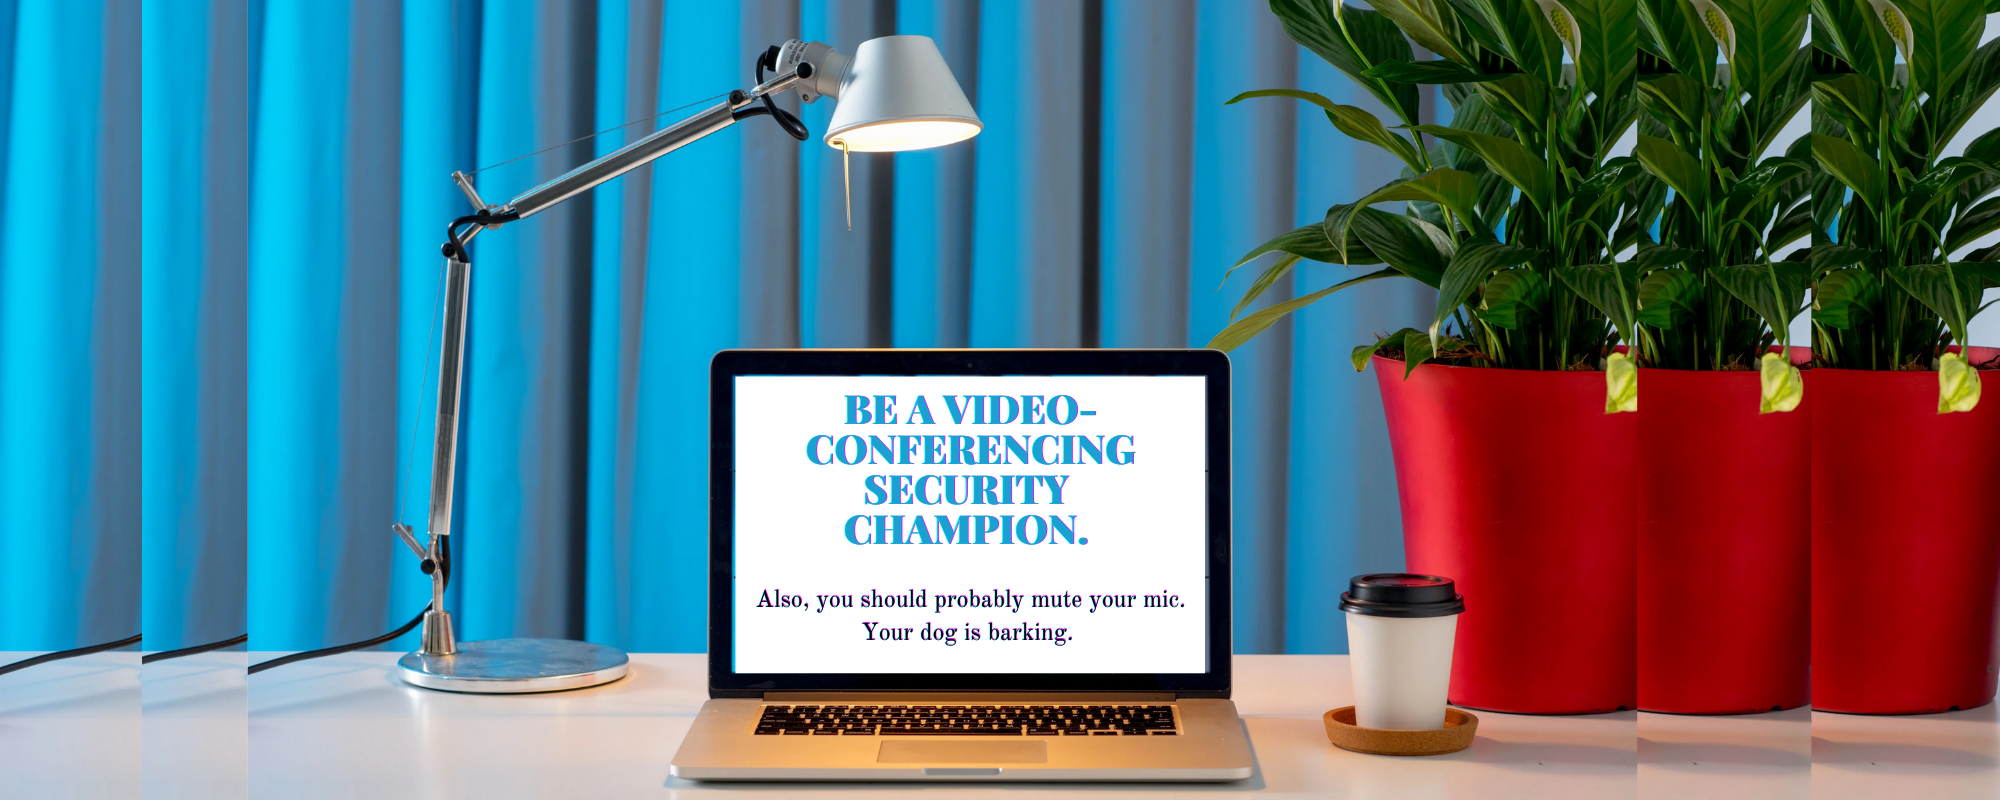 "An image of a computer on a desk. On the screen, words read ""Be a videoconferencing security champion. Also, you may want to mute your mic. Your dog is barking."""